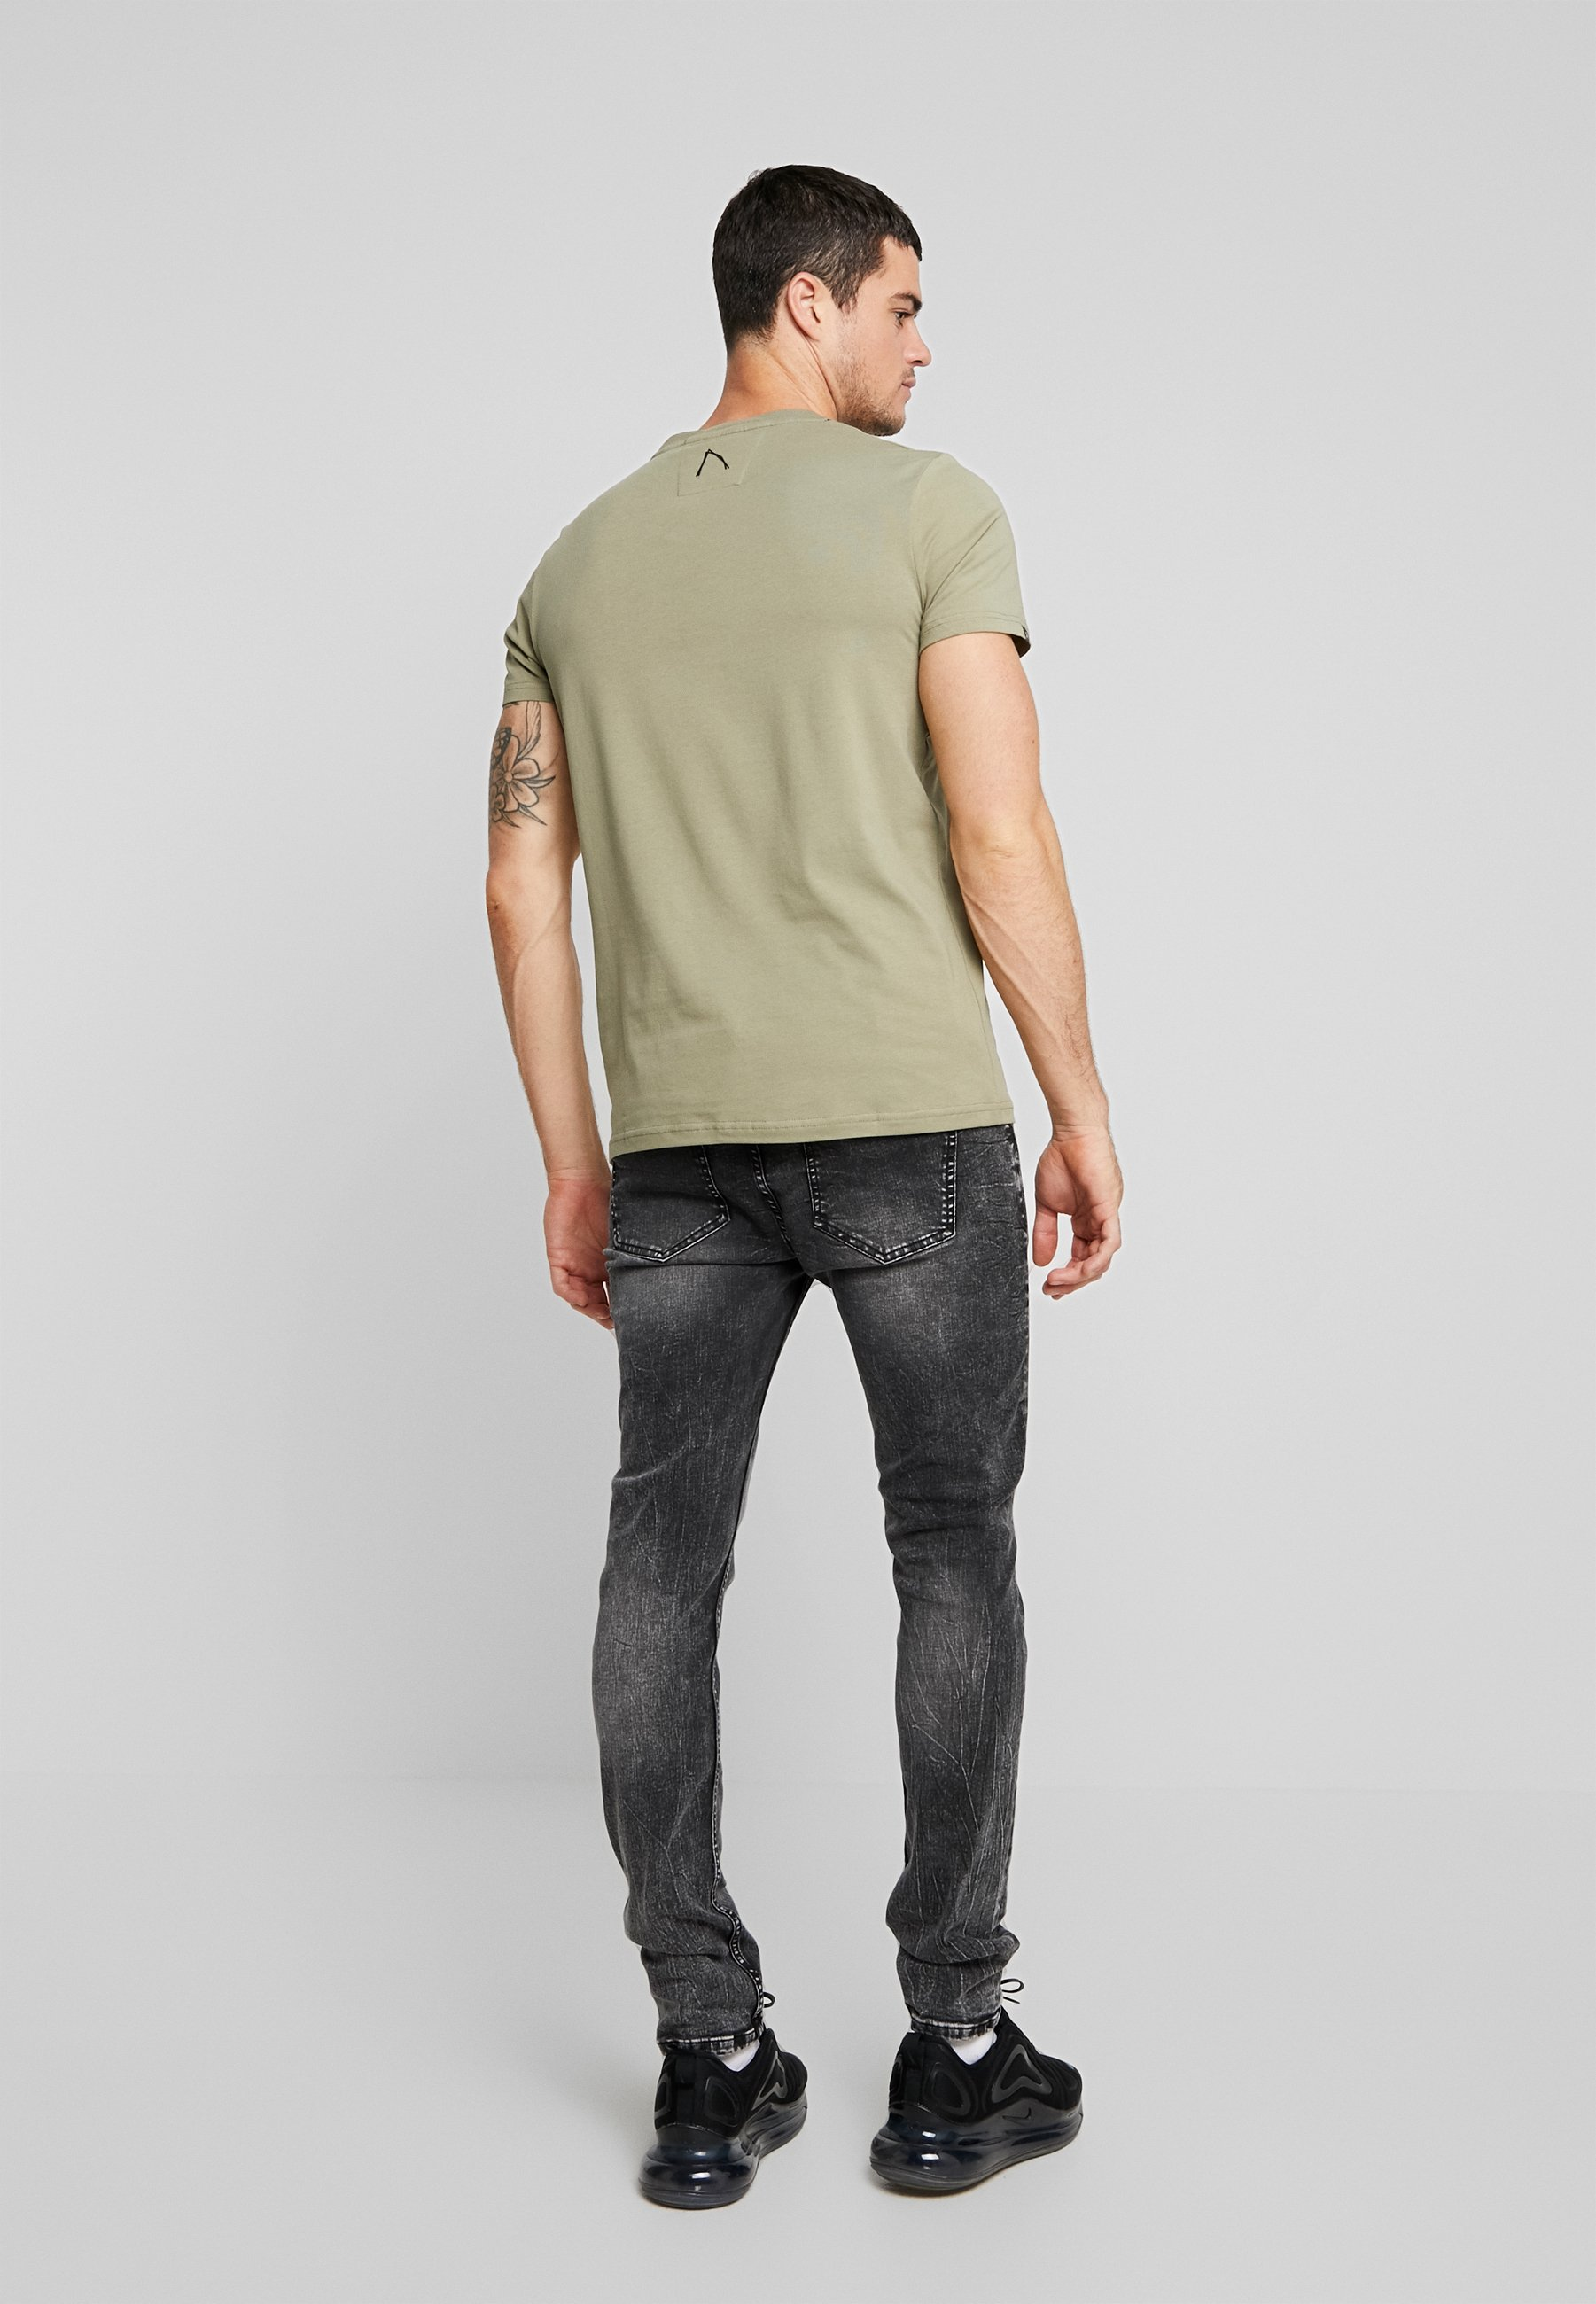 MortyJeans MortyJeans Mid MortyJeans Mid Skinny Tigha Skinny Grey Grey Tigha Skinny Mid Tigha 8OP0nkwX